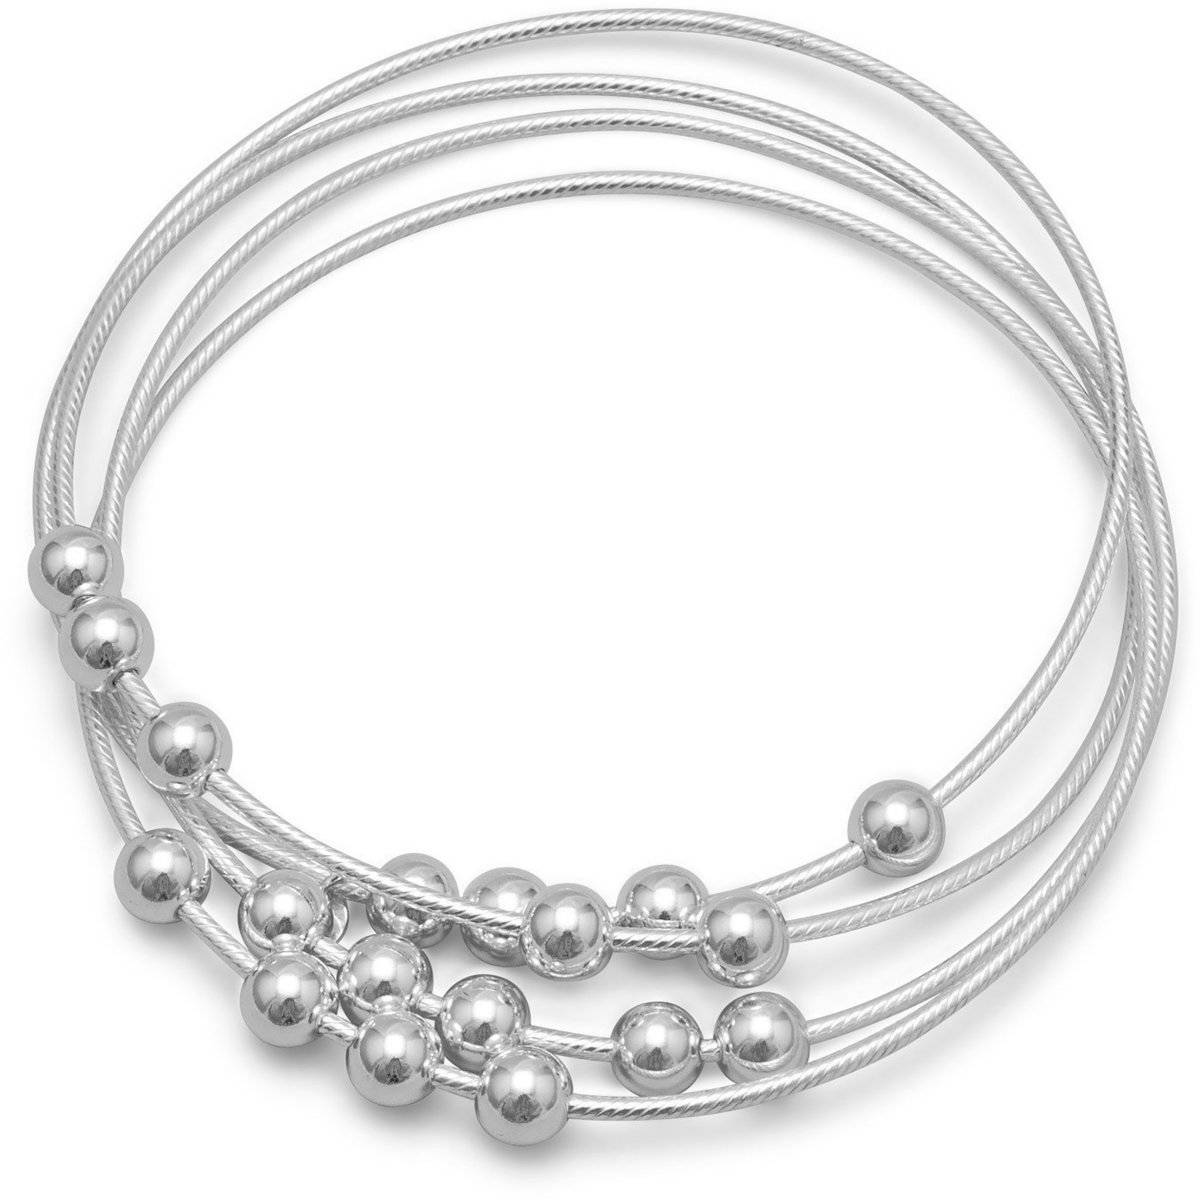 4 Beaded Bangle Bracelet Set 925 Sterling Silver